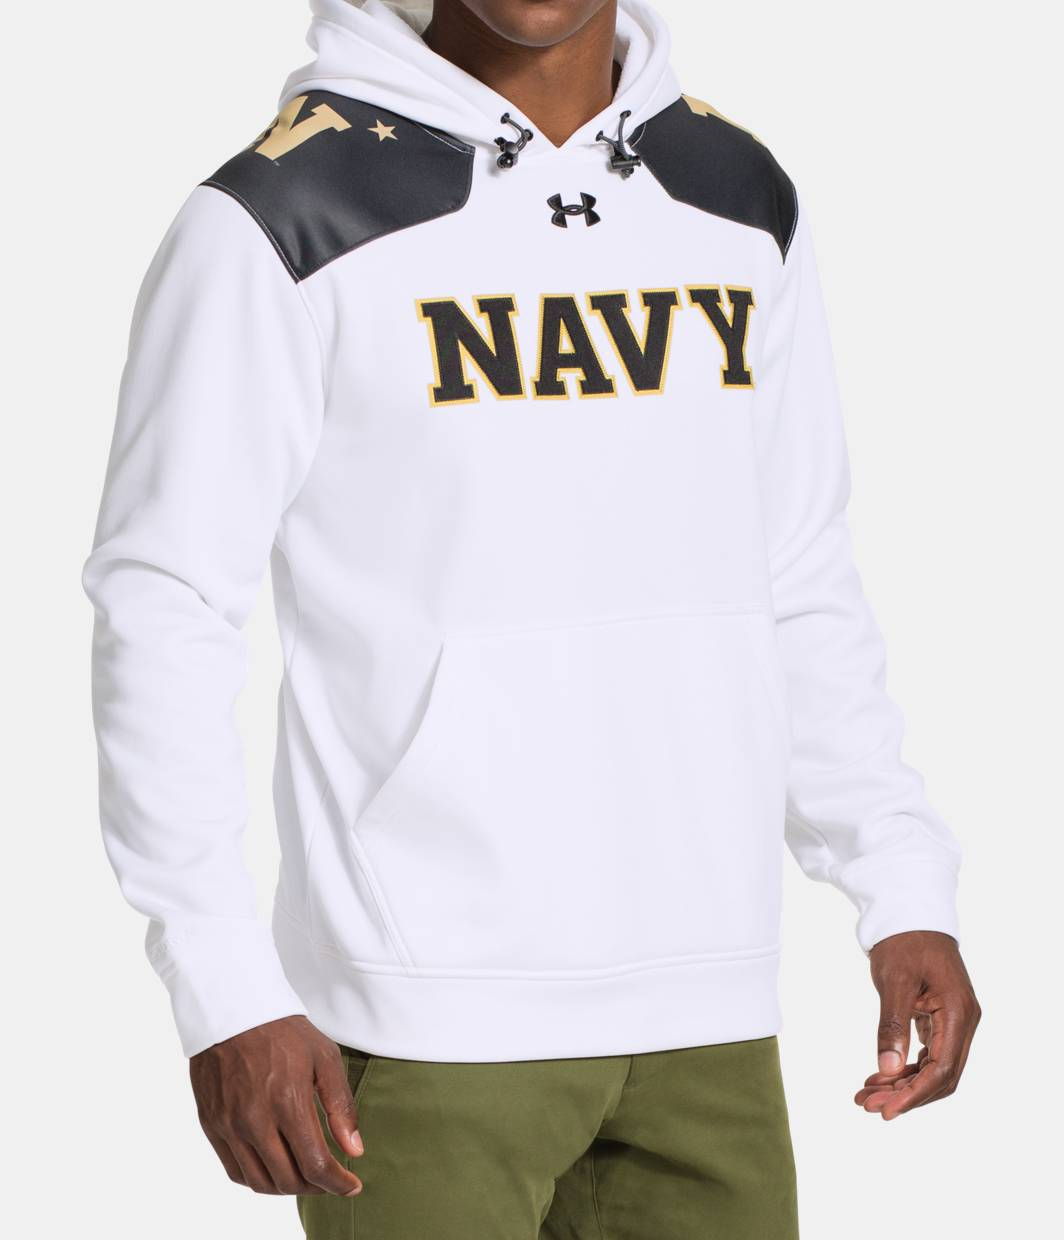 Find U.S. Navy Men's Hoodies & Sweatshirts in a variety of colors and styles from zippered hoodies and pullover hoodies to comfy fleece crewneck sweatshirts. Officially Licensed by the Department of the Navy. By federal law, licensing fees paid to the U.S. Navy for use of its trademarks provide.